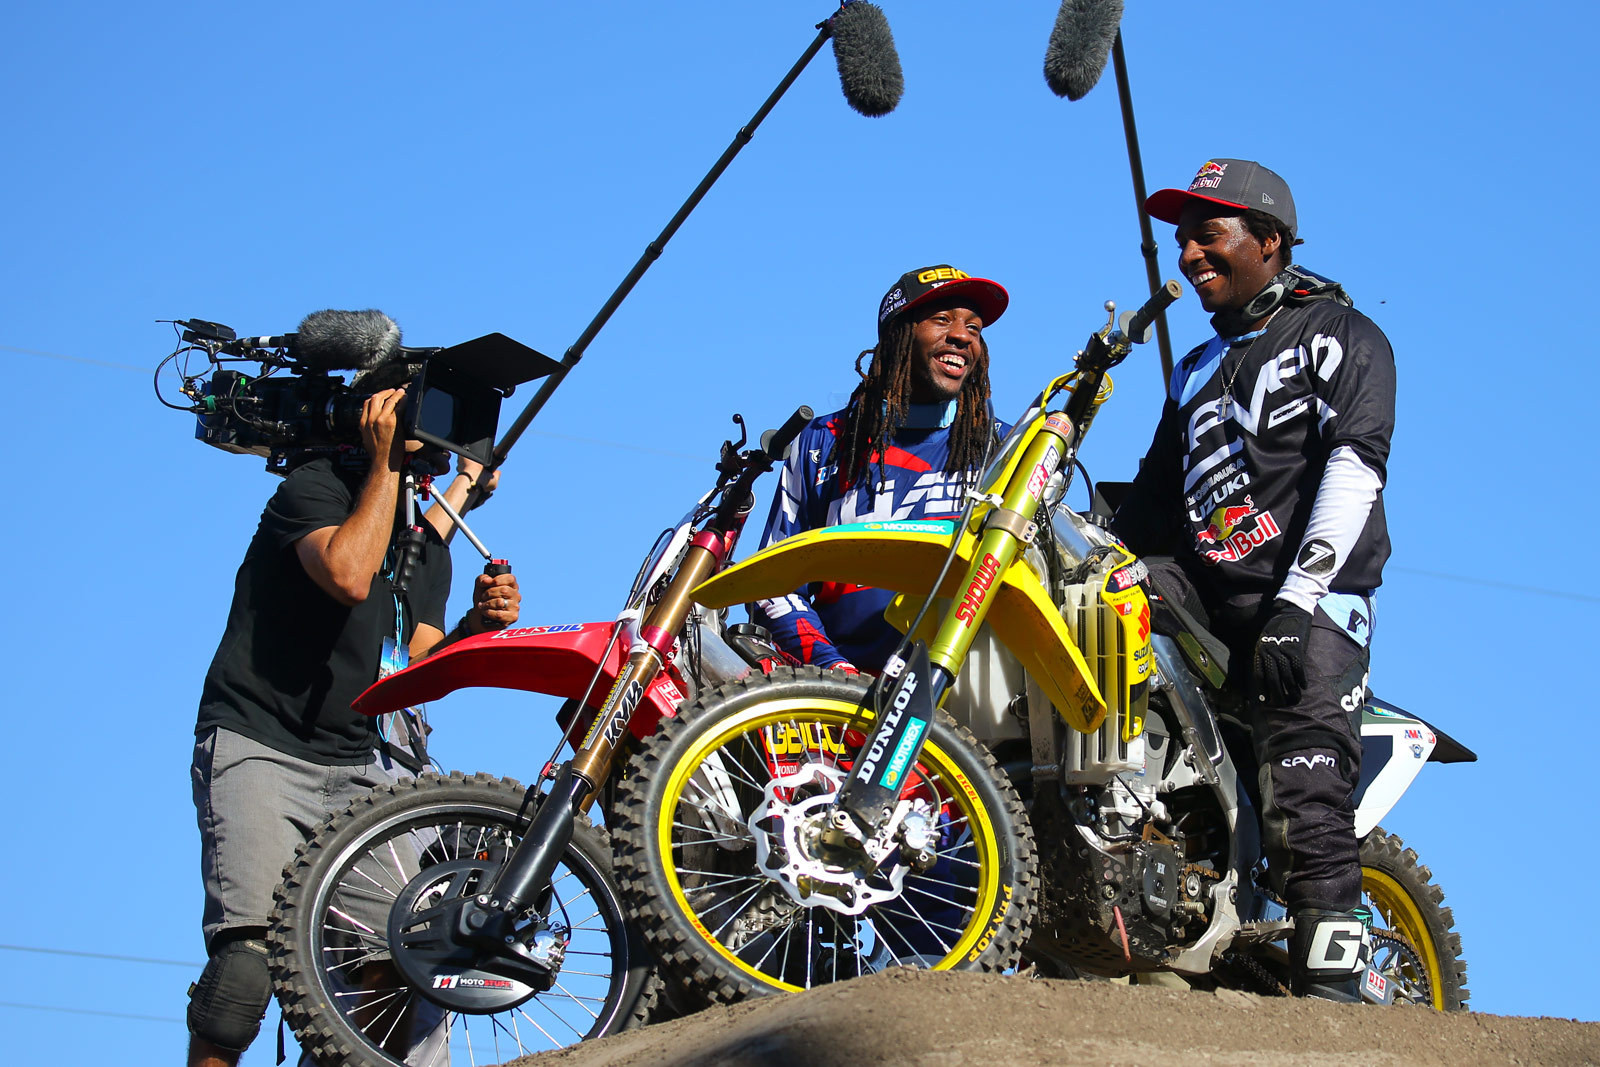 Malcolm Stewart and James Stewart - Photo Blast: Red Bull Straight Rhythm - Motocross Pictures - Vital MX